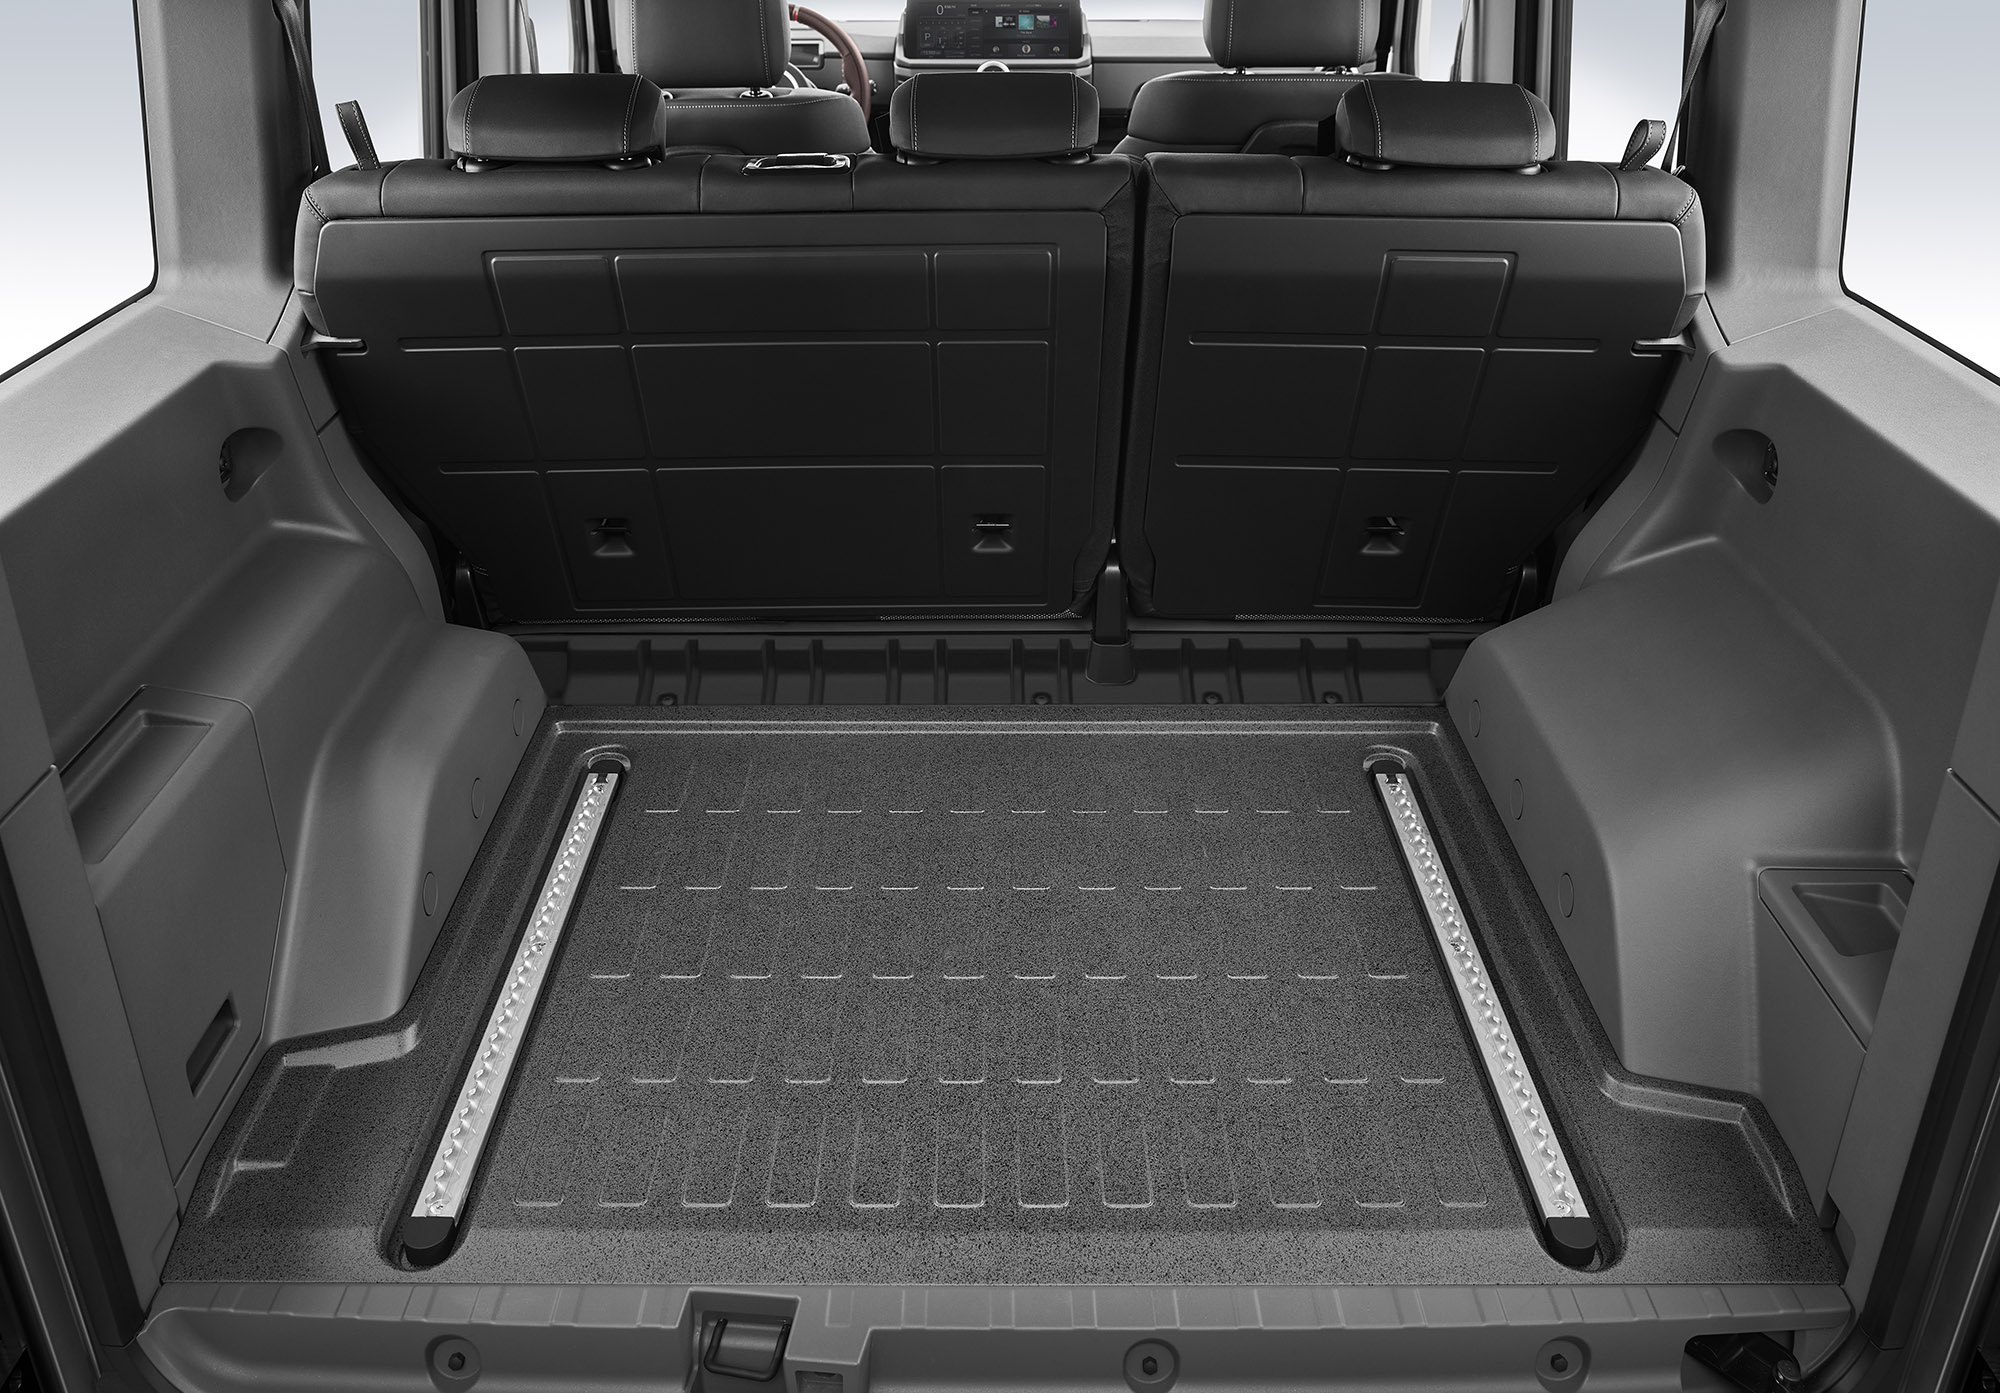 The black and gray rear cargo area includes secured storage areas and optional L-track railings to secure cargo.